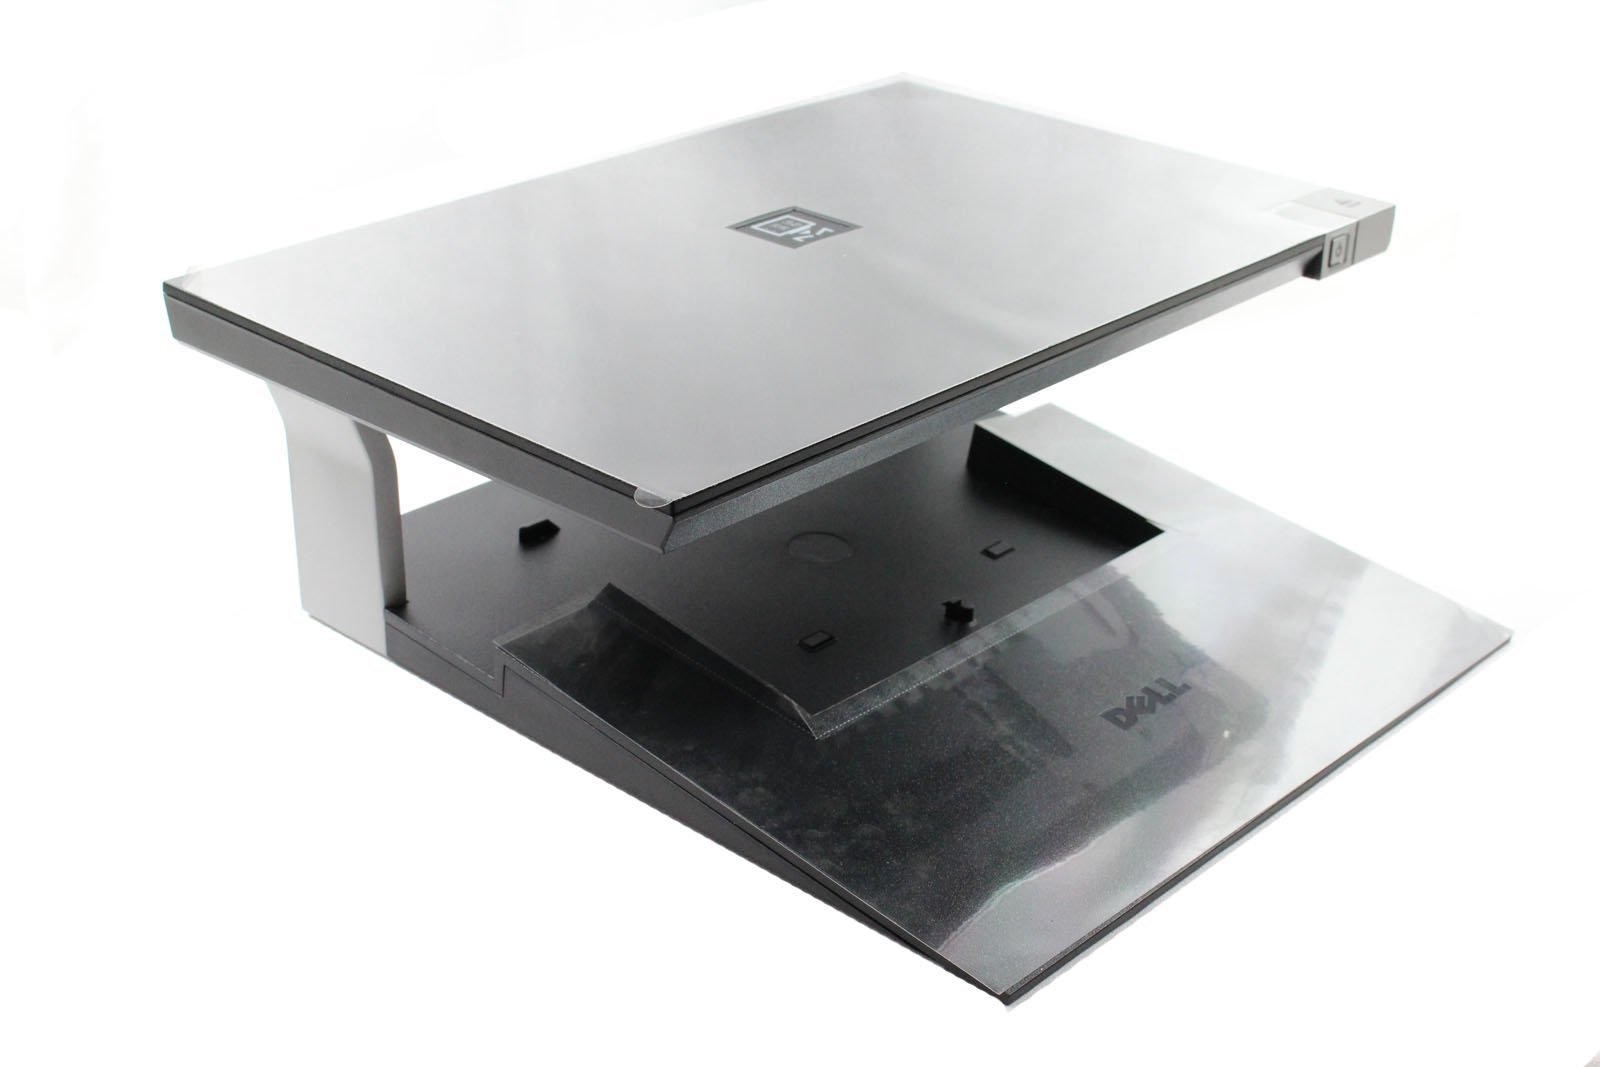 Dell E-CRT CRT Monitor Stand Latitude E4200, E4300, E5400, E5500, E6400 / 6400ATG, E6500 E-Family Laptops and Precision M2400, M4400, M6400 Mobile WorkStations Part Numbers: 0J858C, J858C, 330-0875, W005C, PW395, 0PW395, 330-0878 by Dell